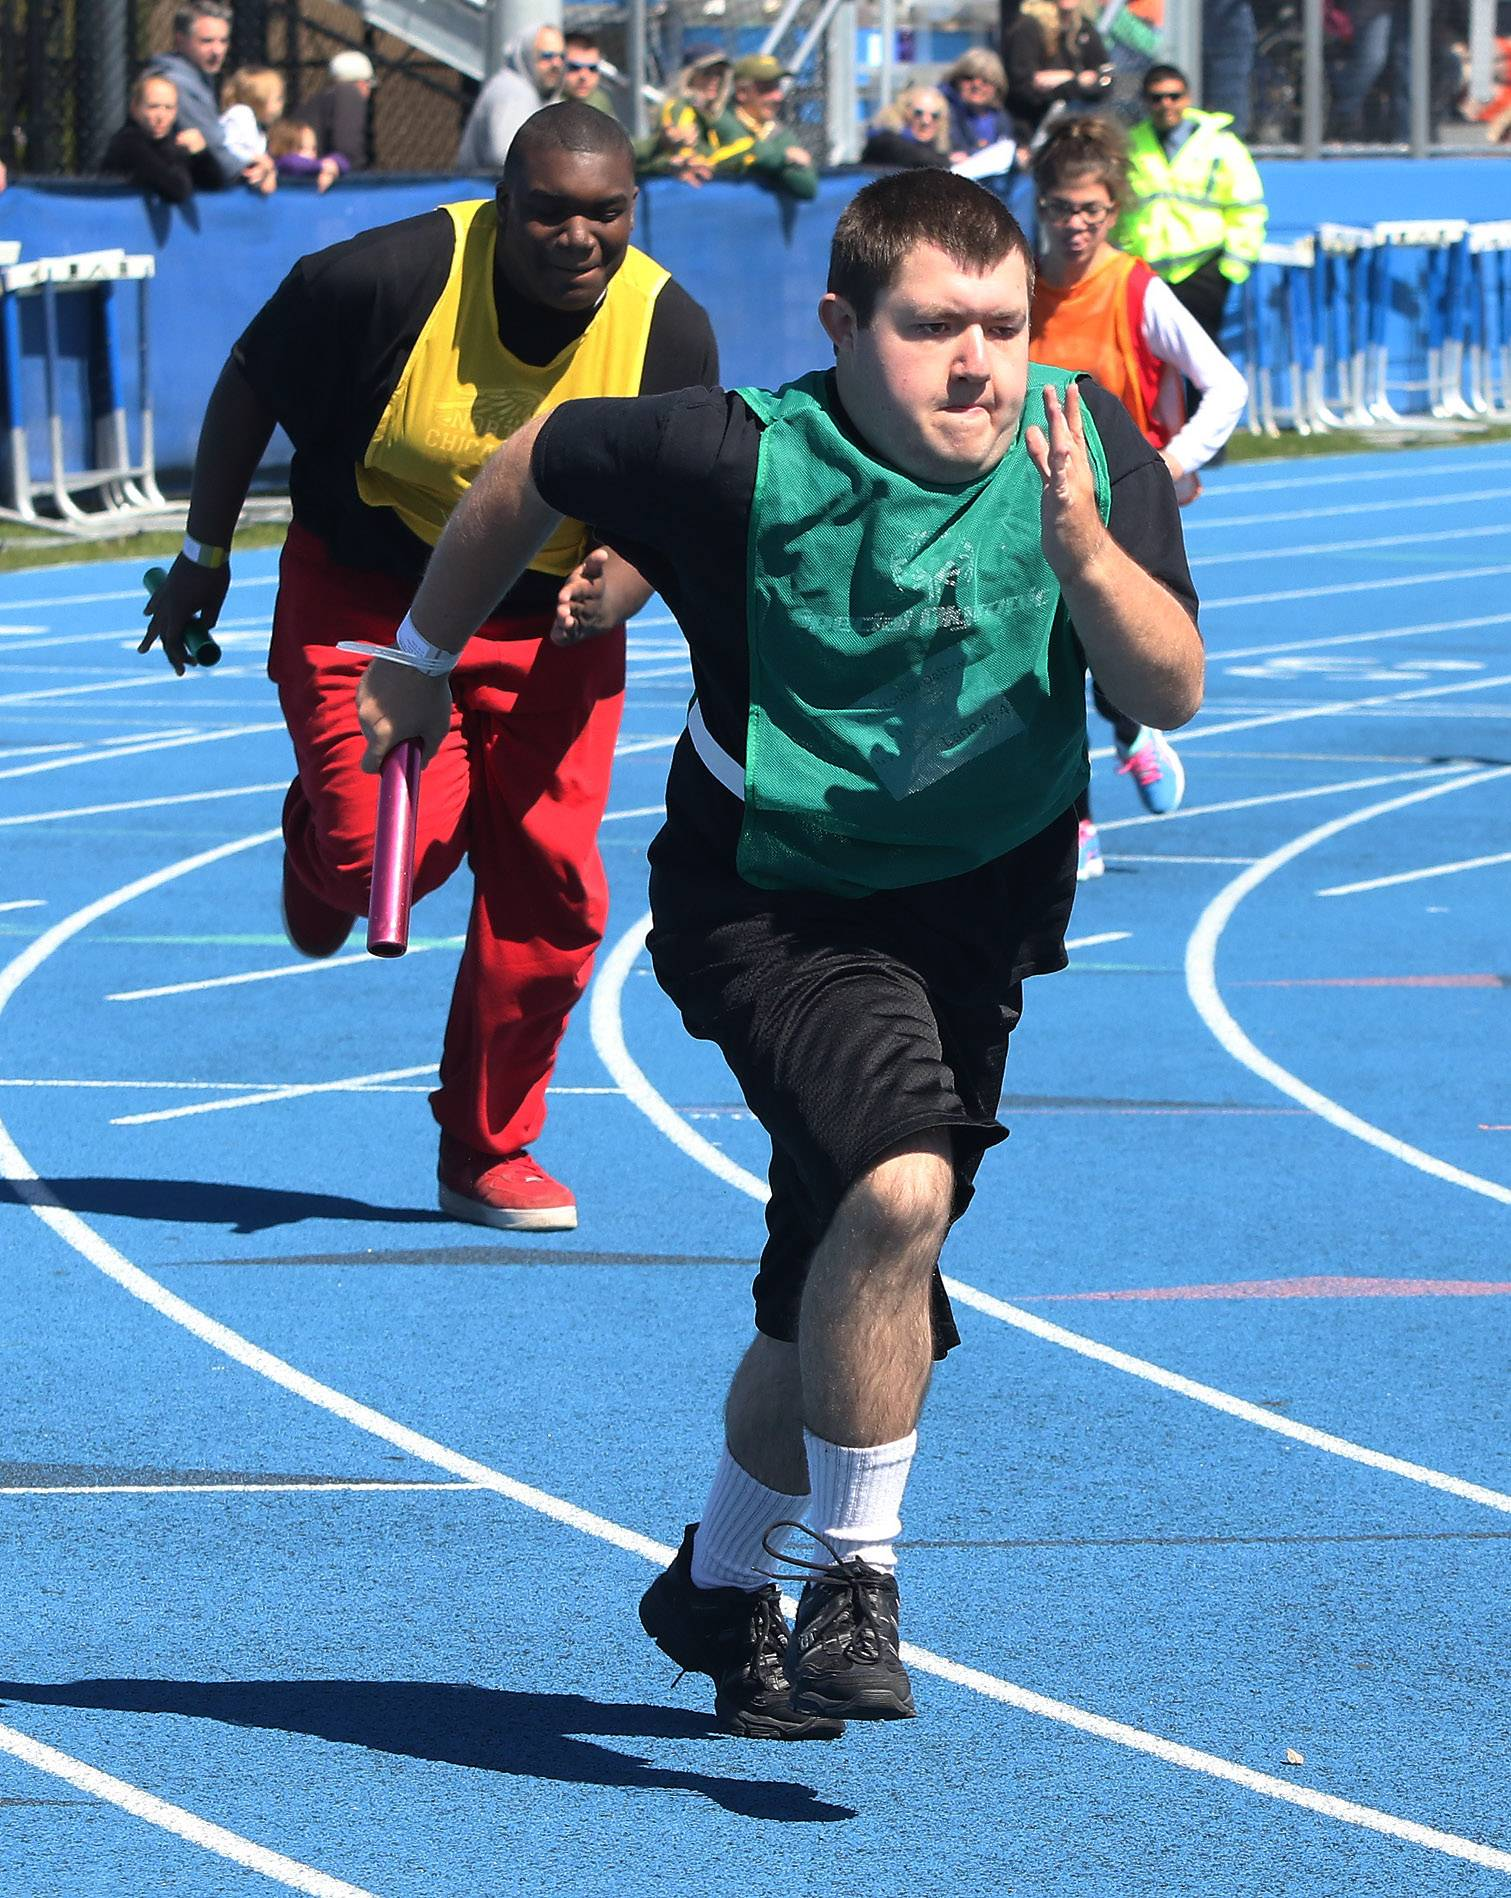 Chris Derose of the Vernon Hills High School team starts the 4x100 relay Sunday during Special Olympics Illinois Northeastern/Area 13 Spring Games at Lake Zurich High School.